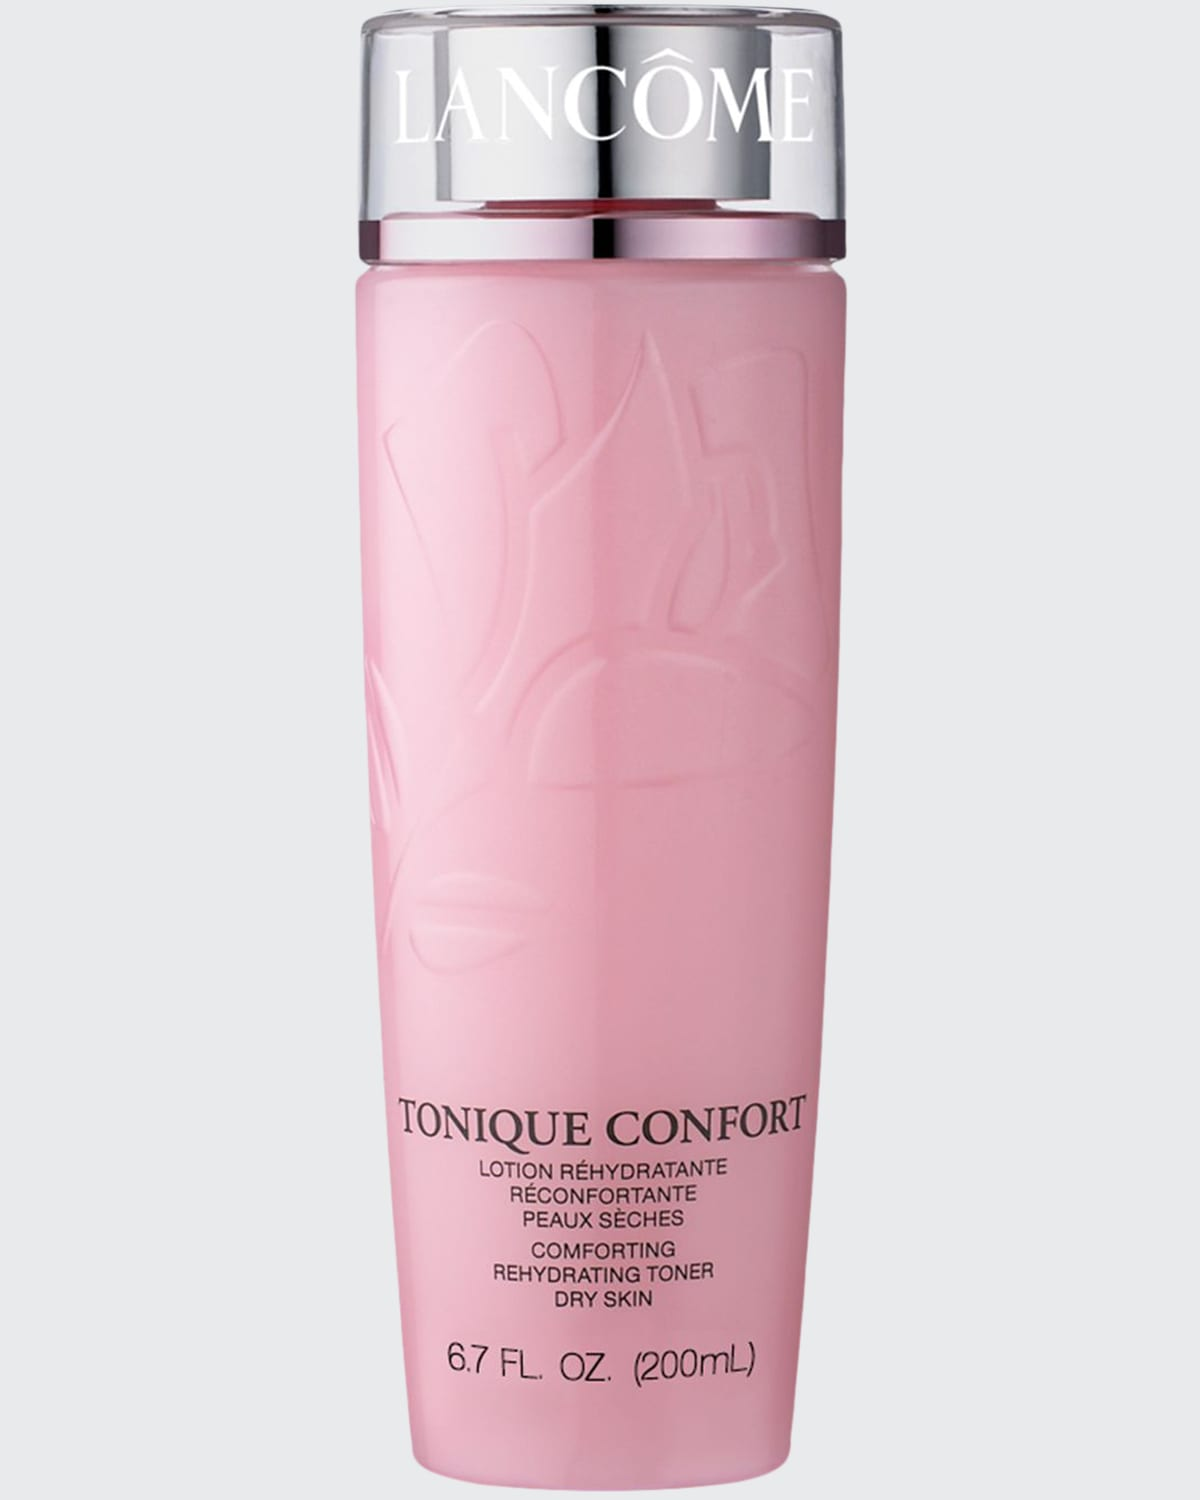 Tonique Confort Re-Hydrating Comforting Toner with Acacia Honey